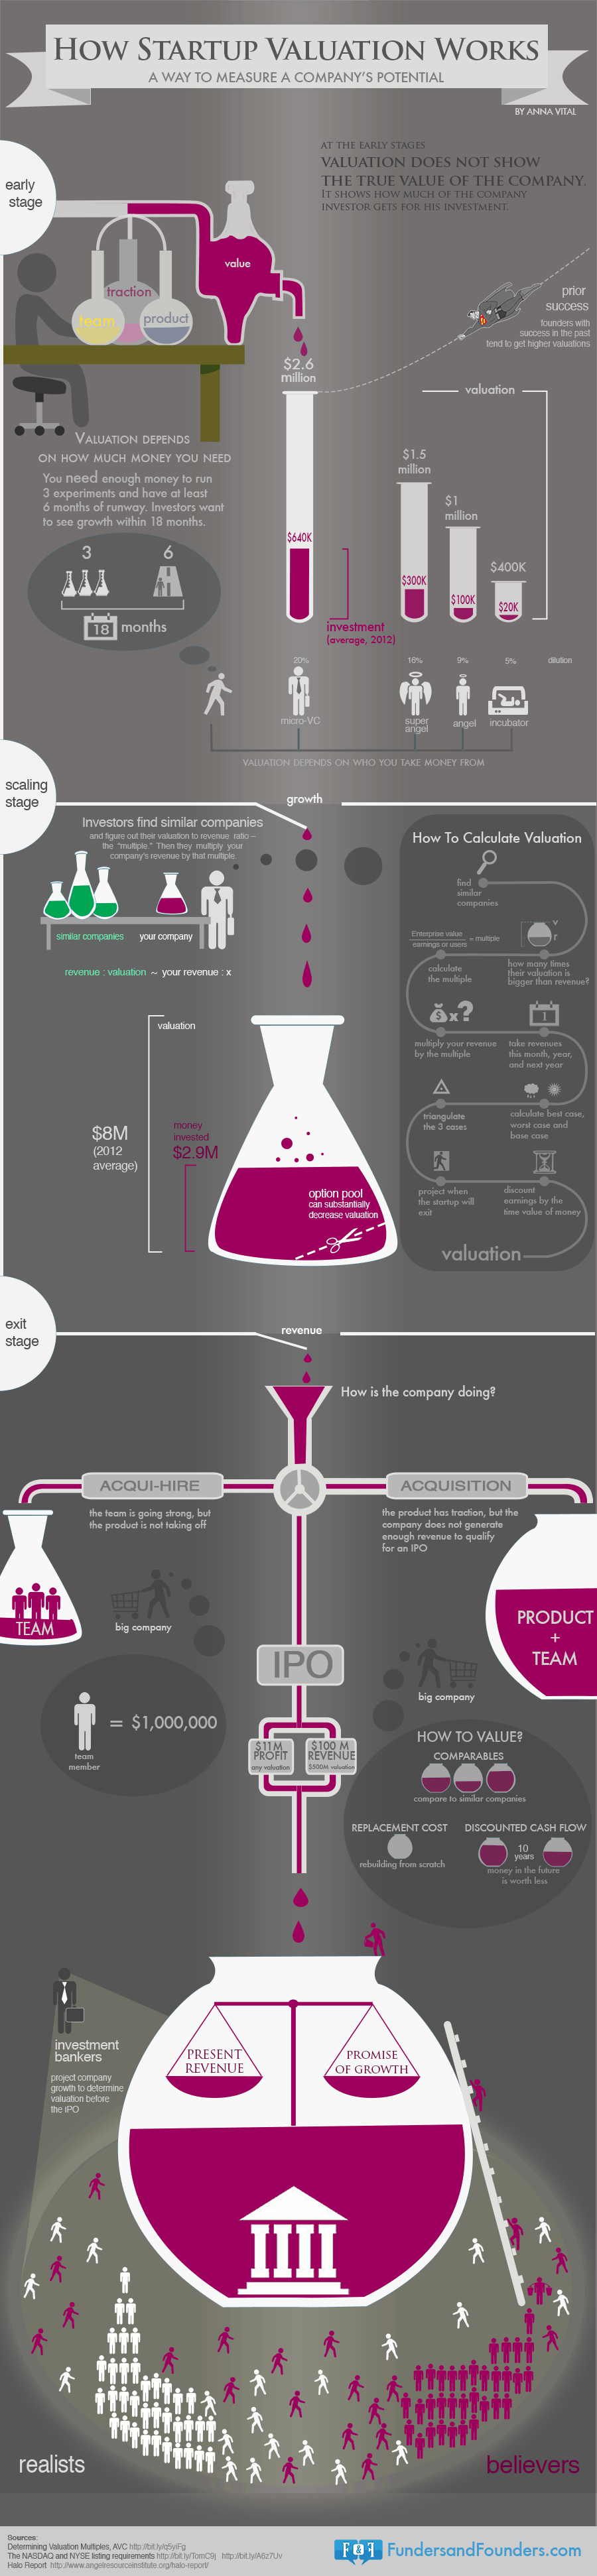 business-valuation infographic